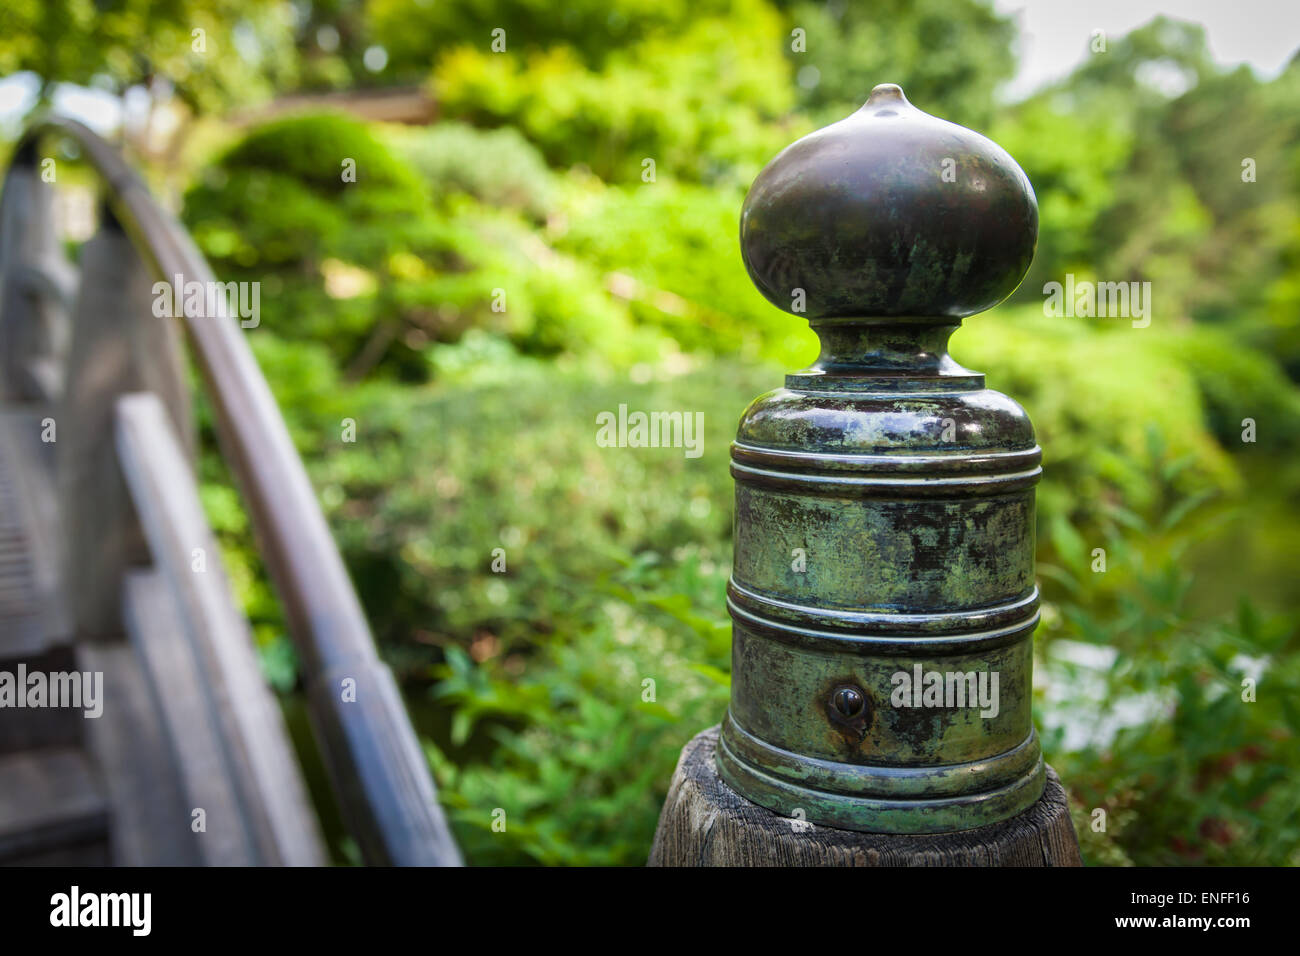 Close up view of a weathered ornamental fixture on a bridge in the Japanese Botanical Gardens in Fort Worth, Texas. - Stock Image